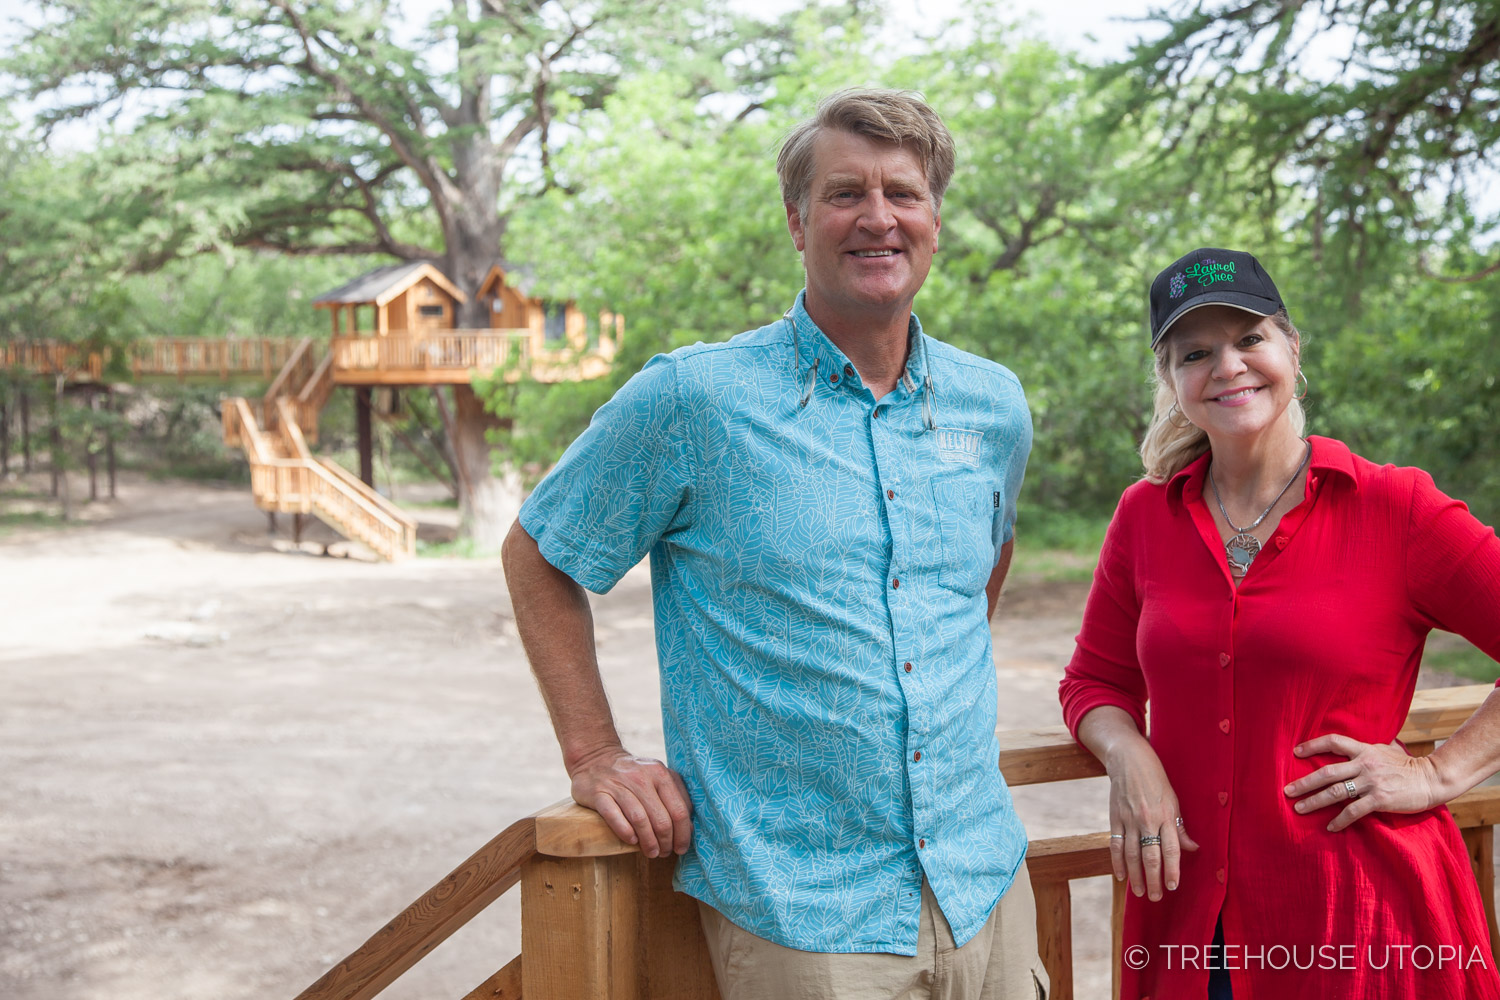 Pete Nelson and Laurel waters at Treehouse Utopia.